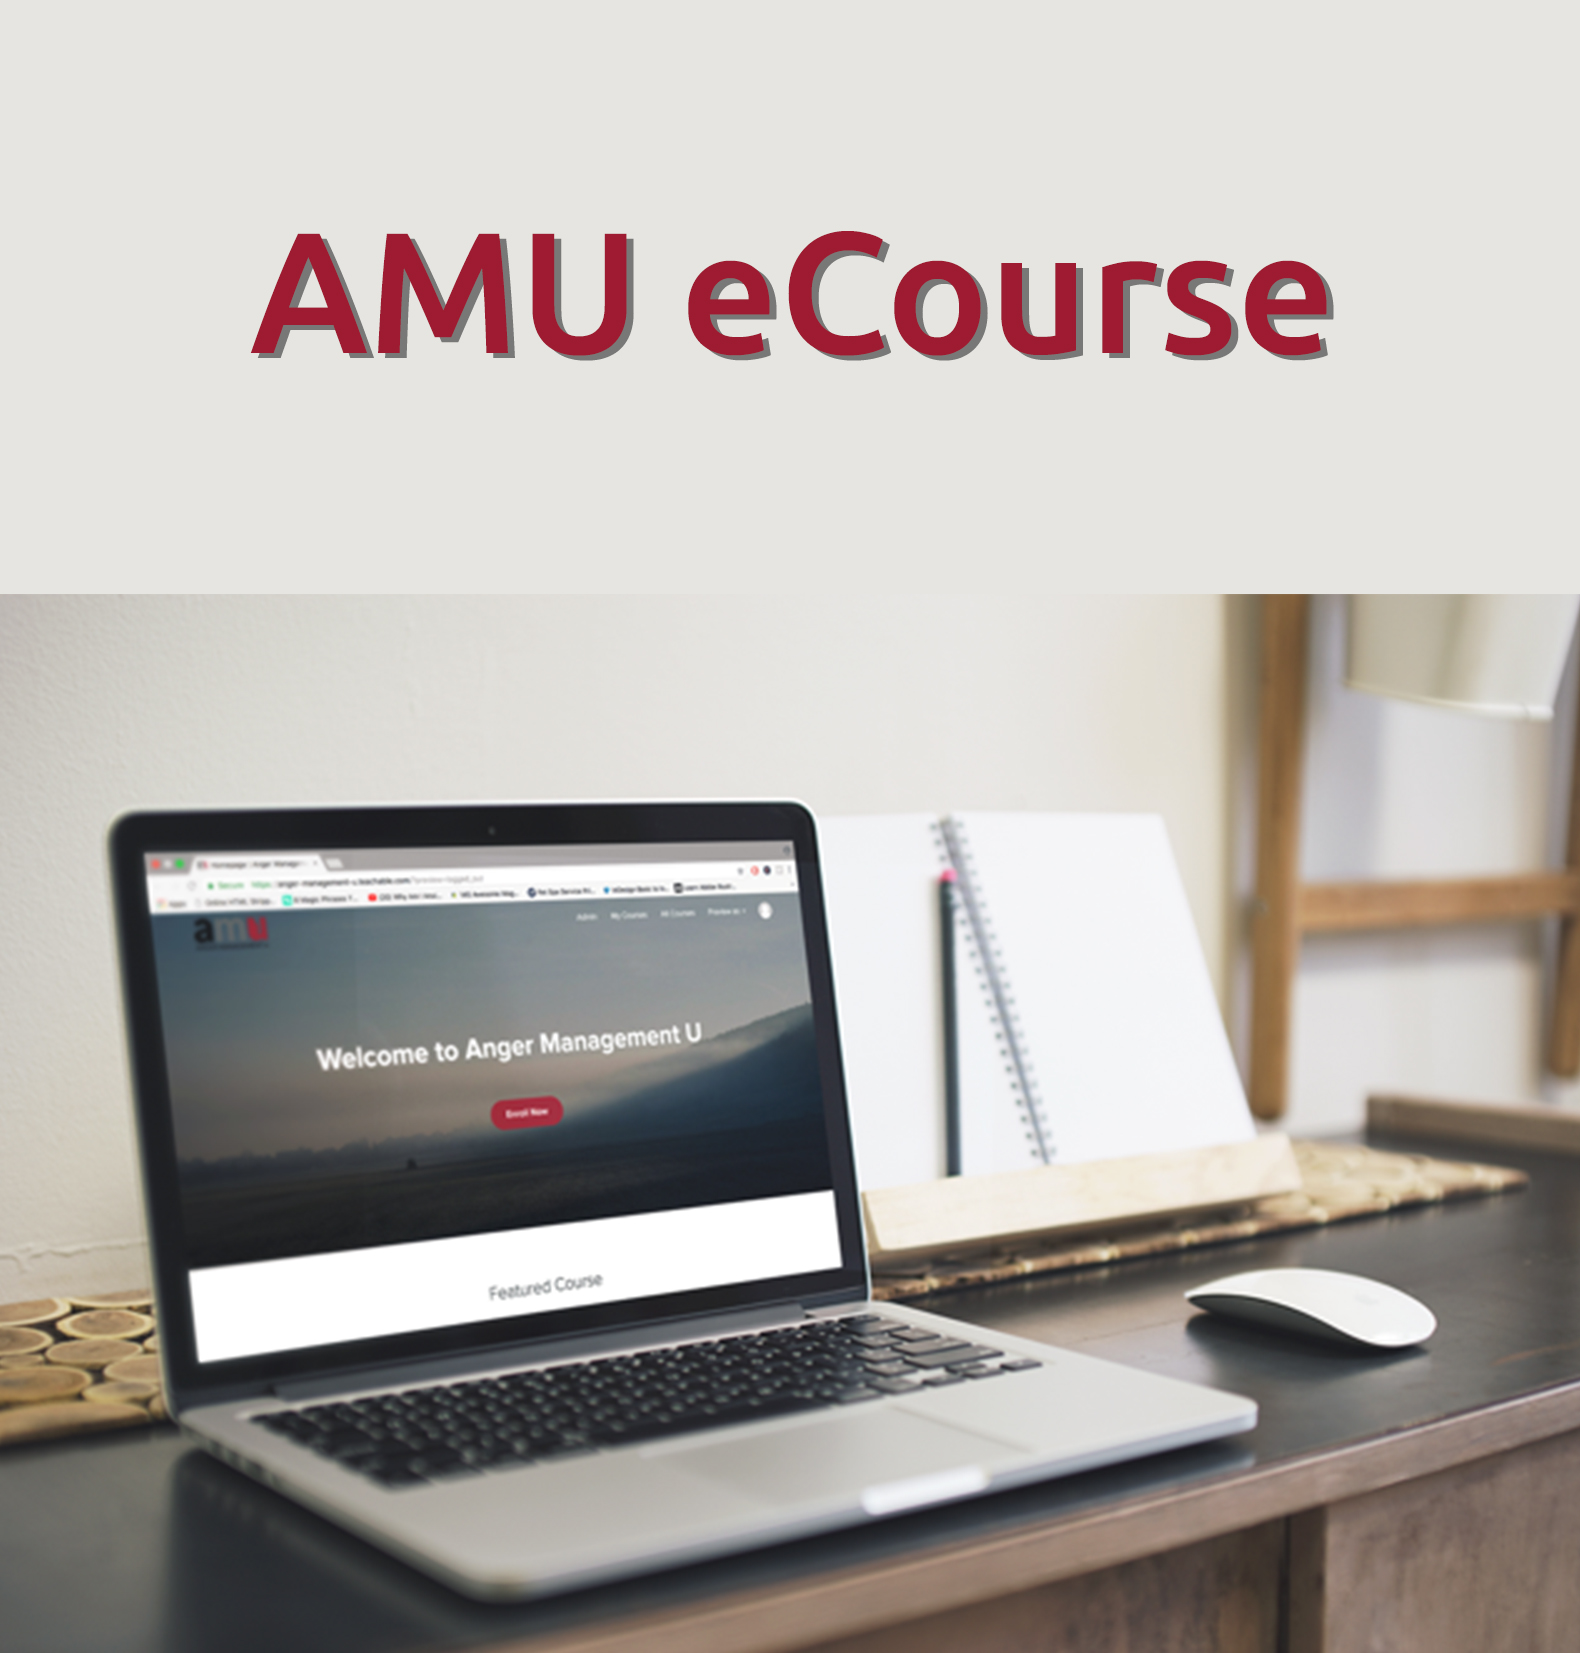 AMU ecourse photo - Home